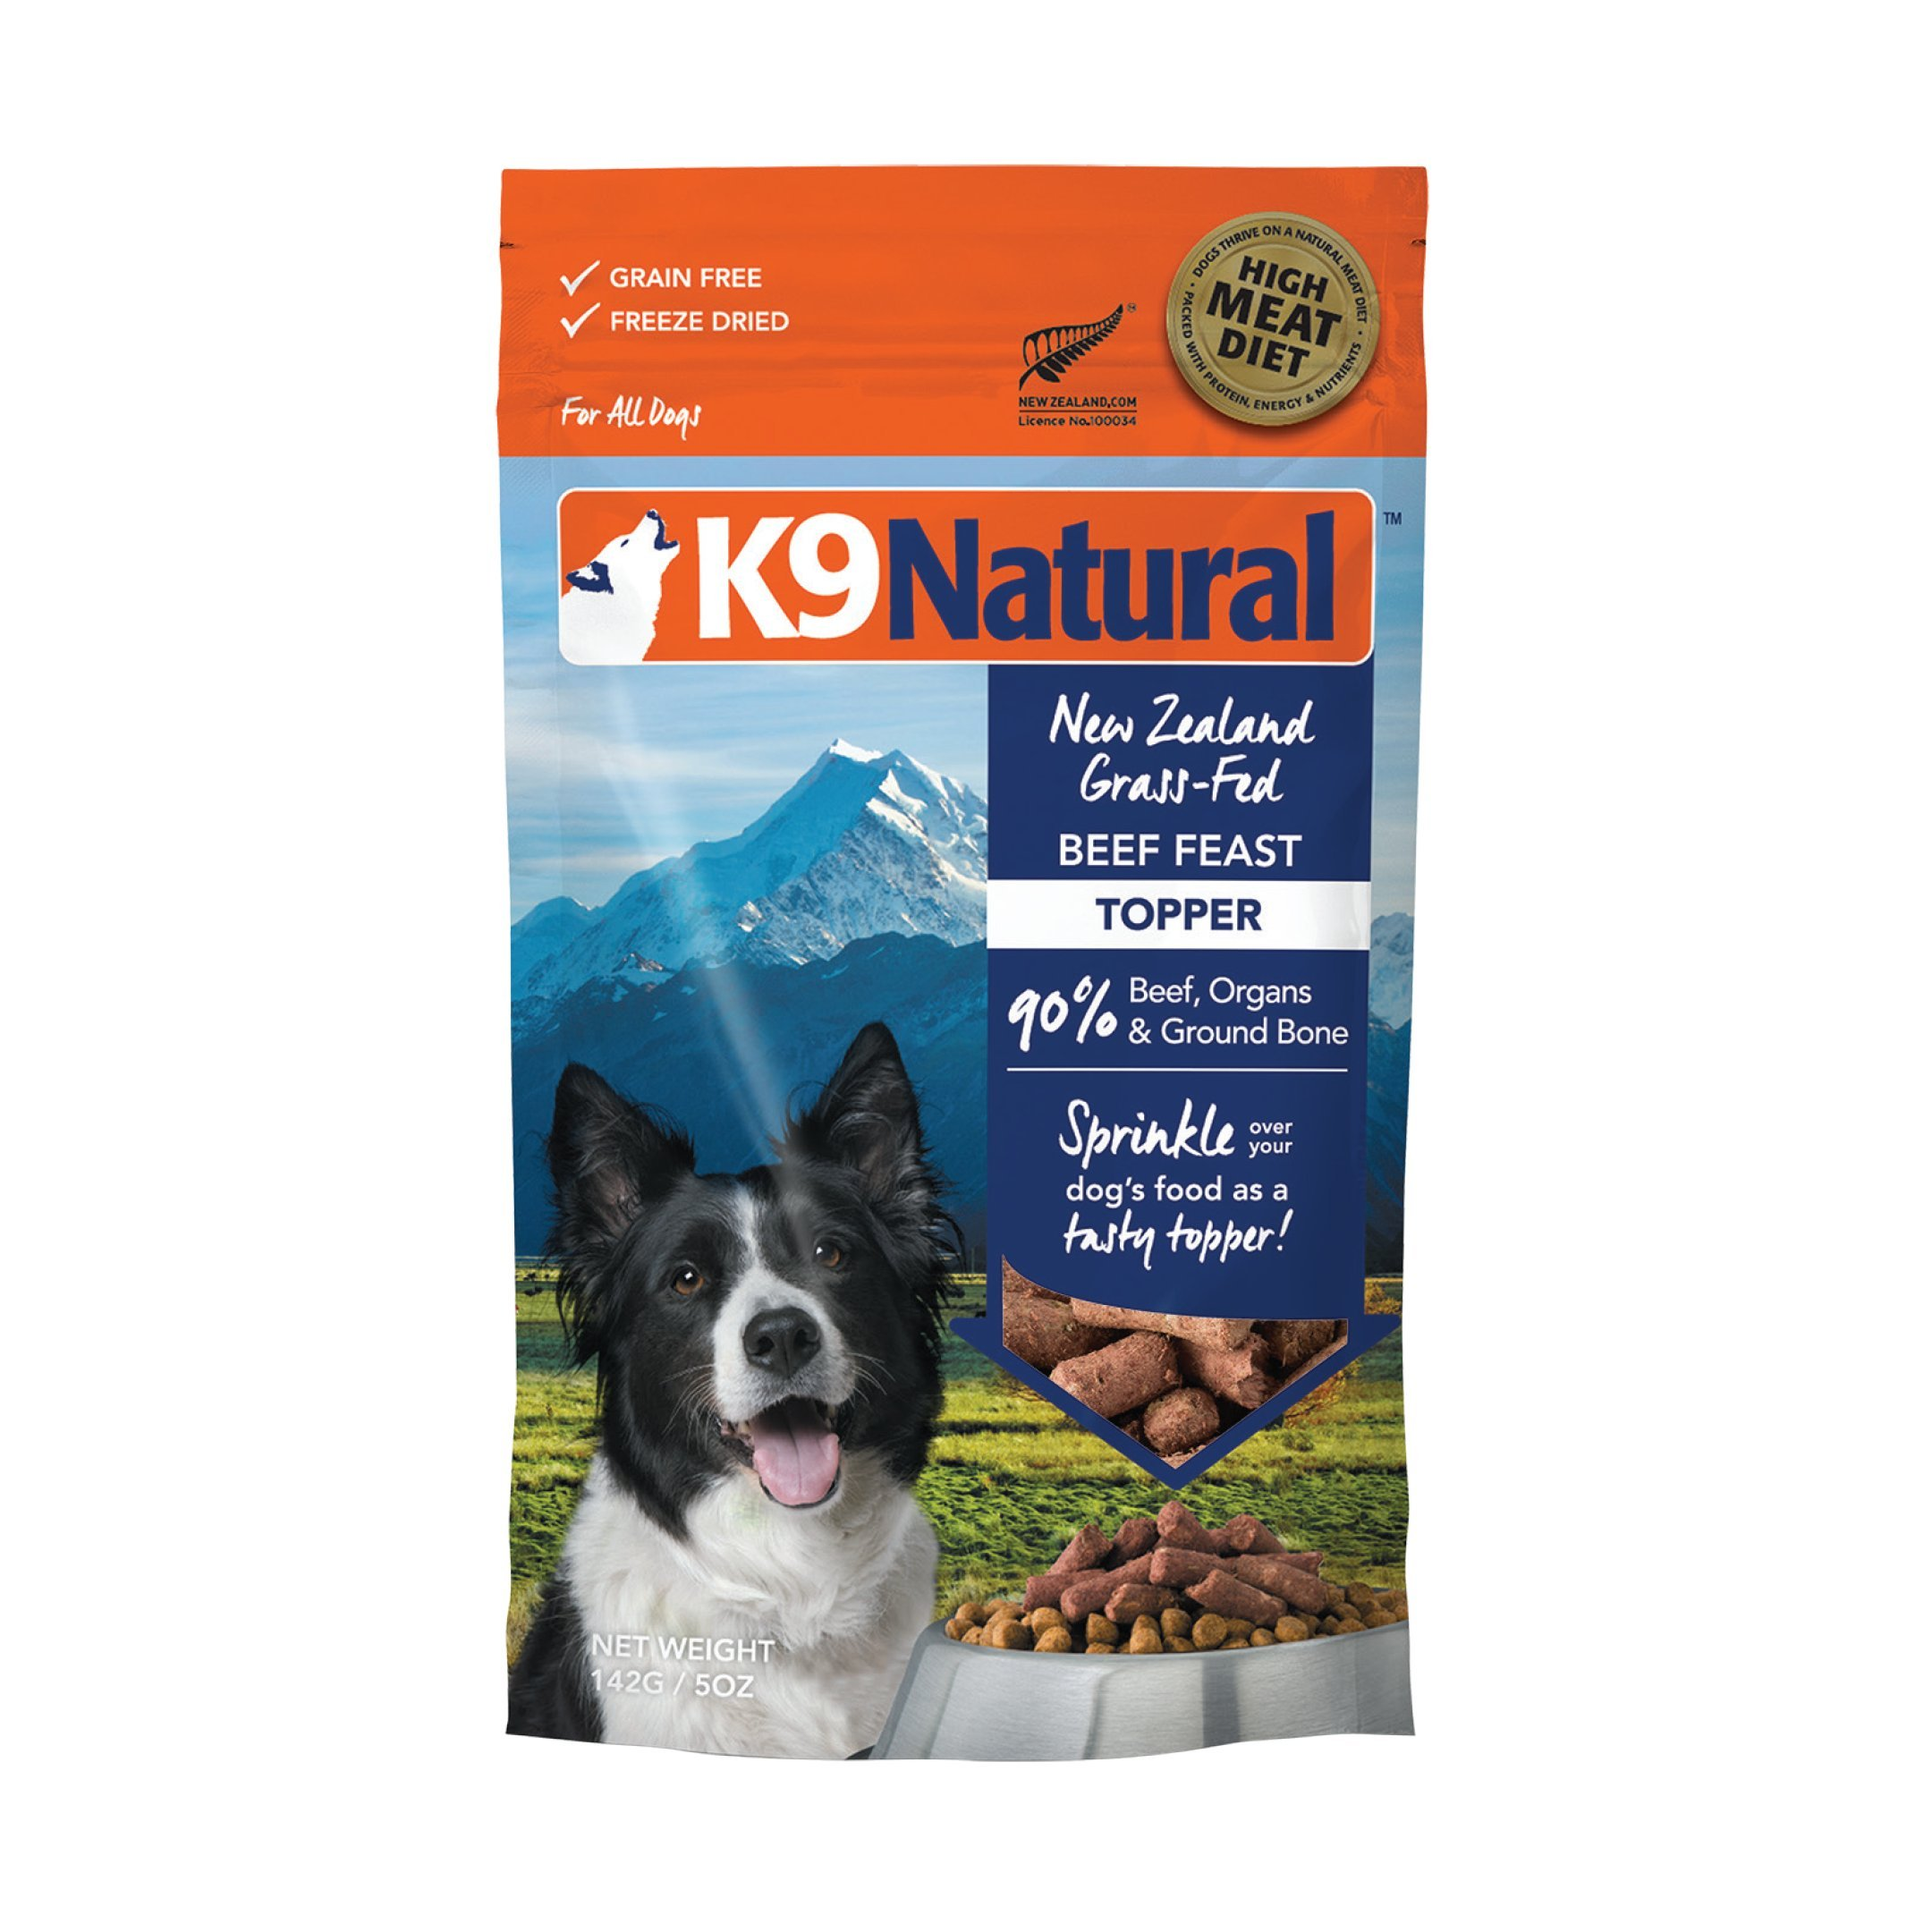 Freeze Dried Dog Food Topper By K9 Natural - Perfect Grain Free, Healthy, Hypoallergenic Limited Ingredients For All Dogs - Raw, Freeze Dried Mixer - Beef Topper - 5oz Pack